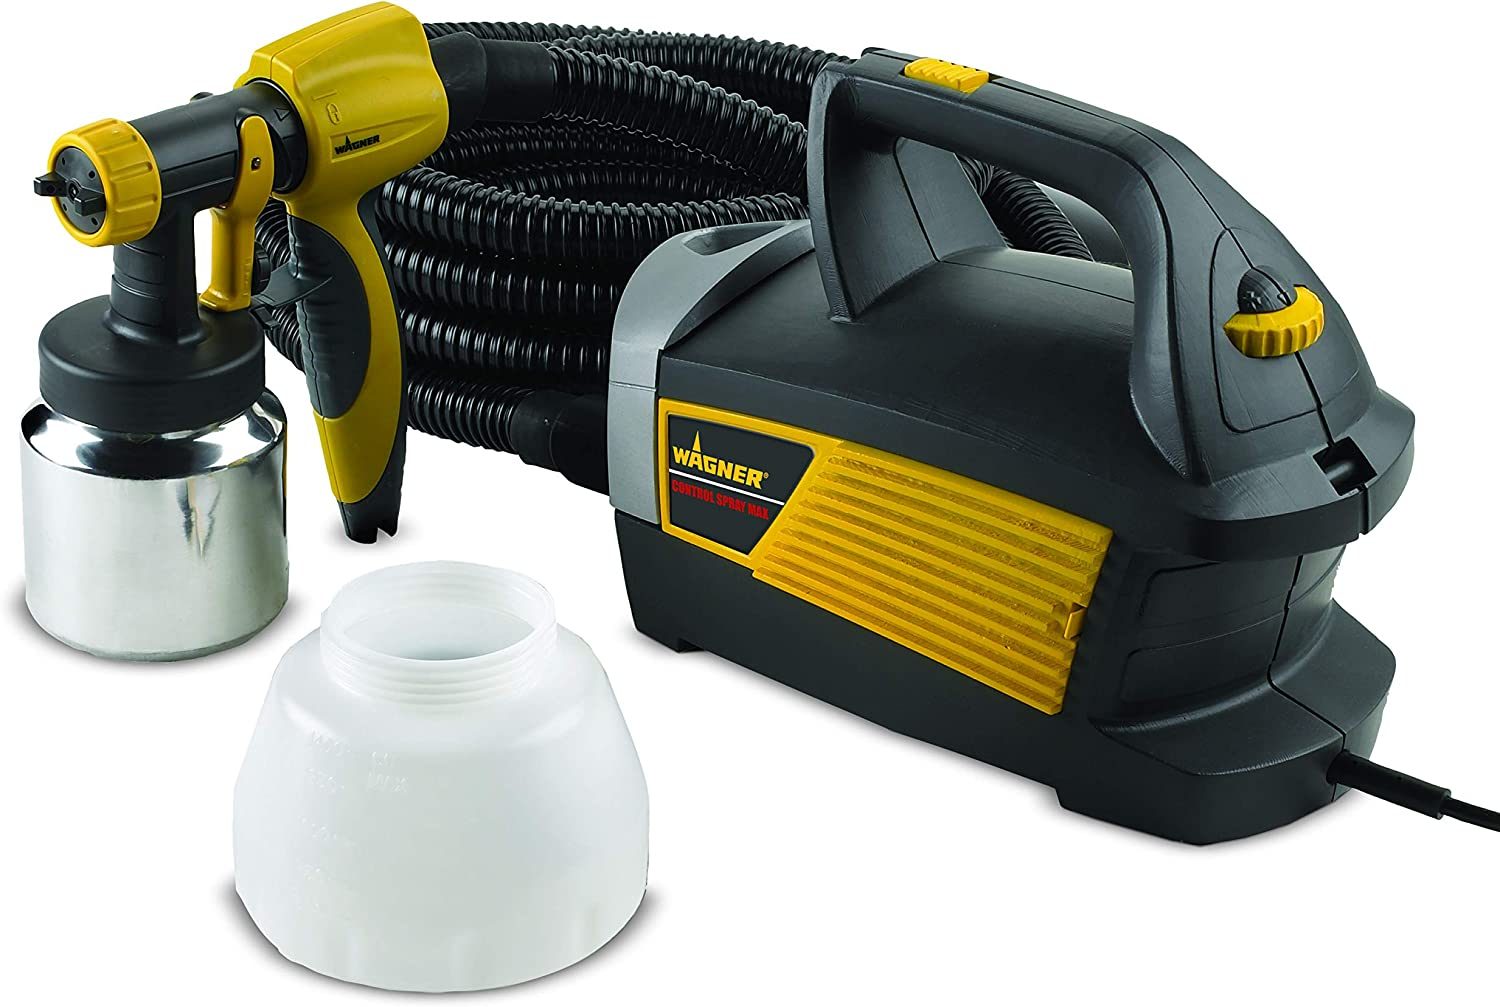 6 Best Paint Sprayers for Deck Stain Reviews